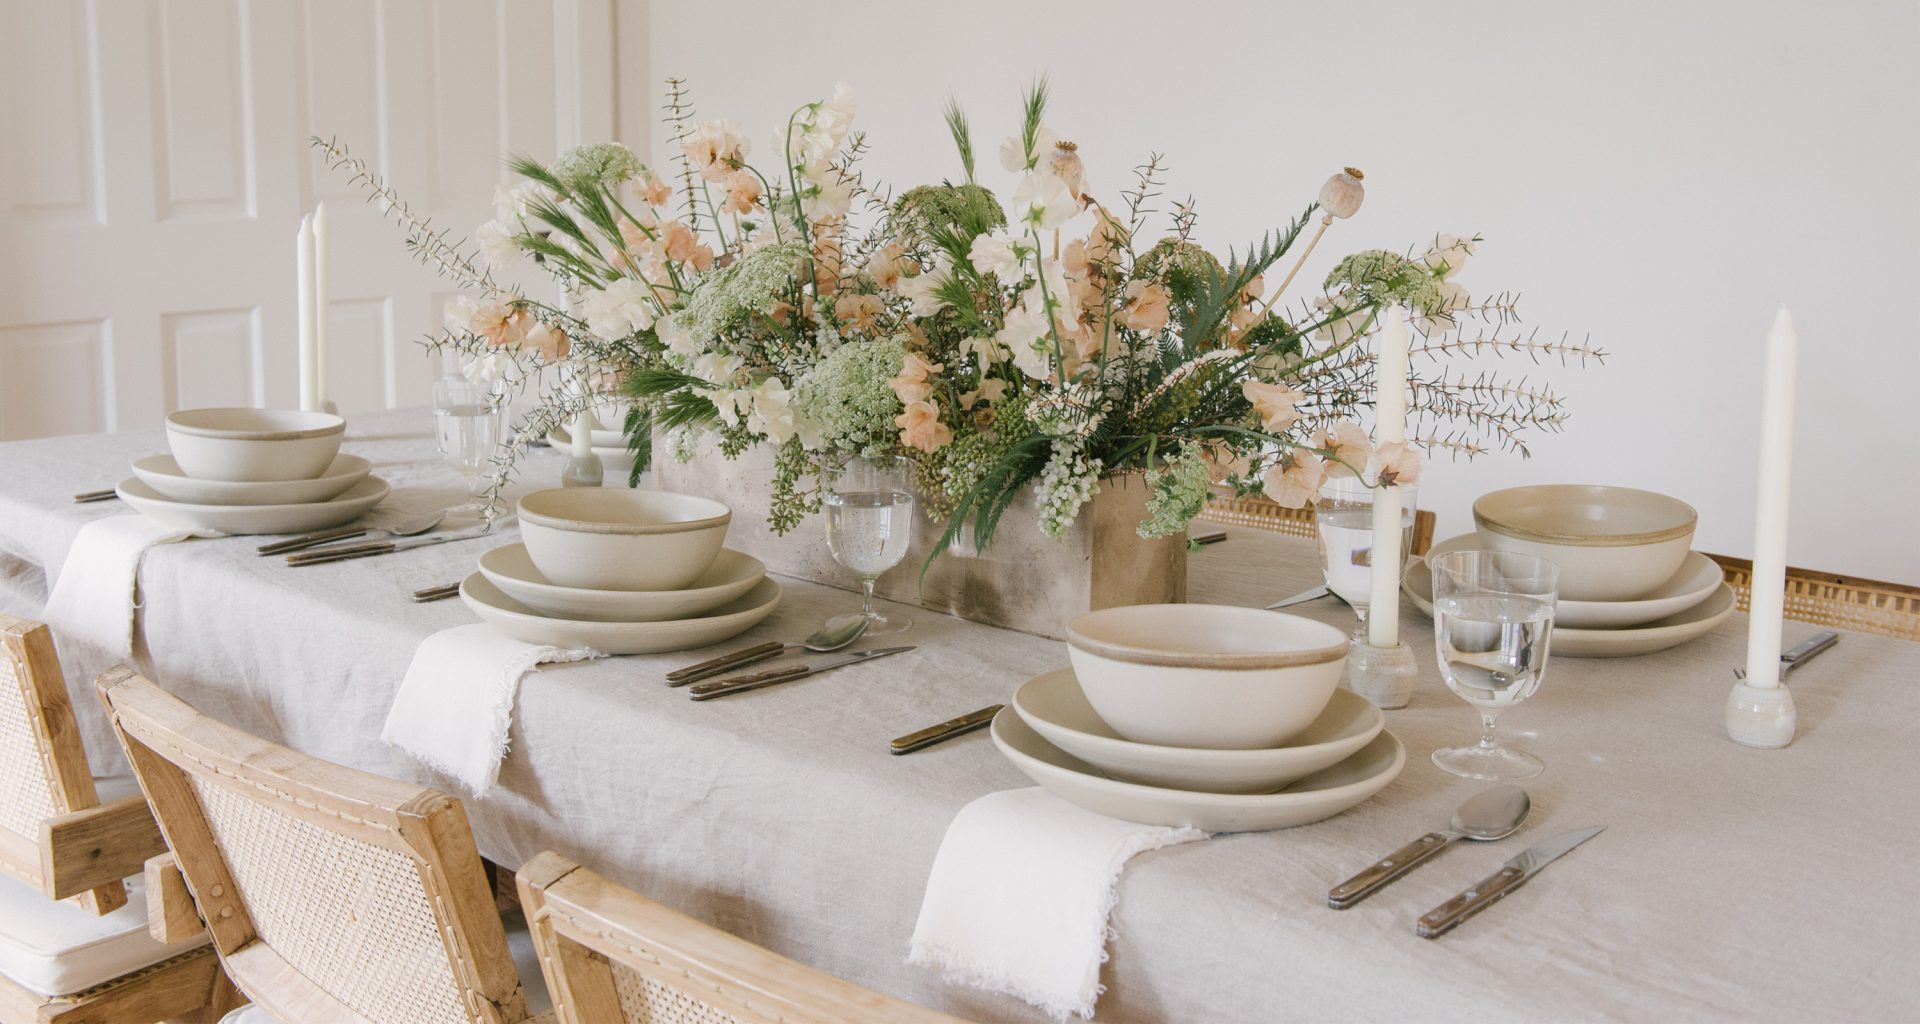 Find Your Entertaining Uniform to Set the Perfect Table, Every Time